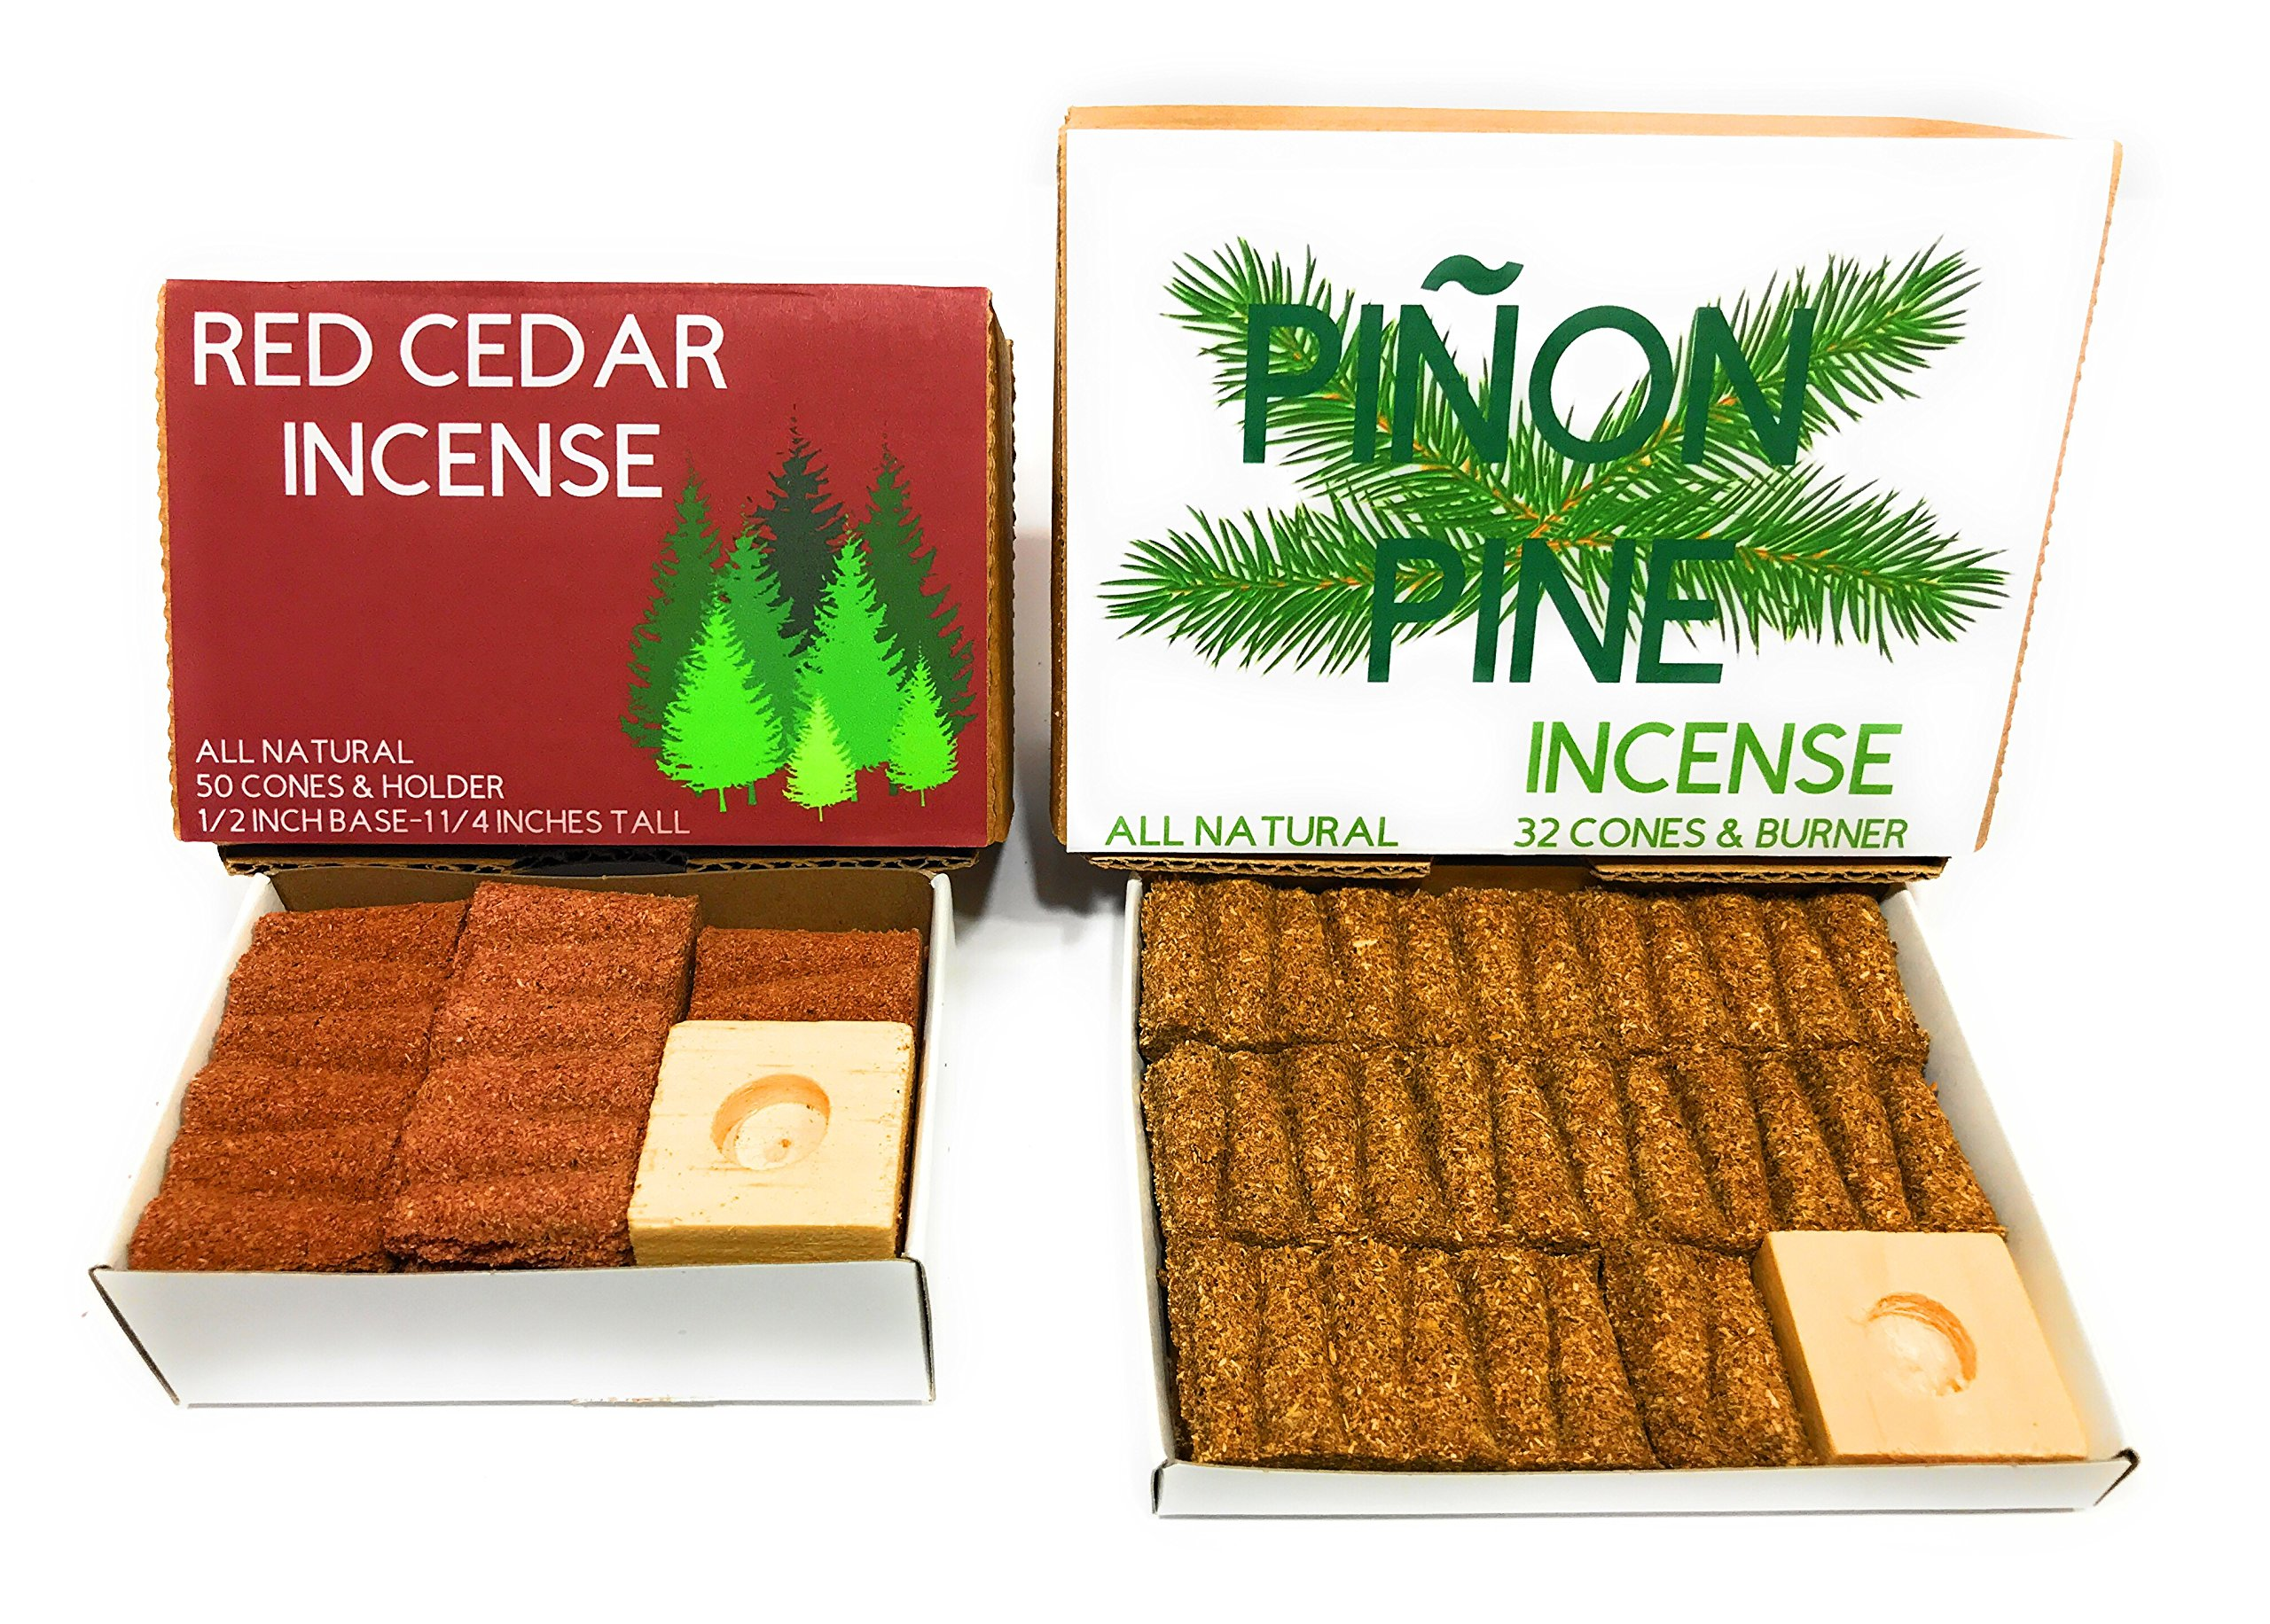 J & D's Everyday Needs Pinon and Cedar Incense Cone Bundle, 1 Box of Each, 82-pieces, with Holders by J & D's Everyday Needs